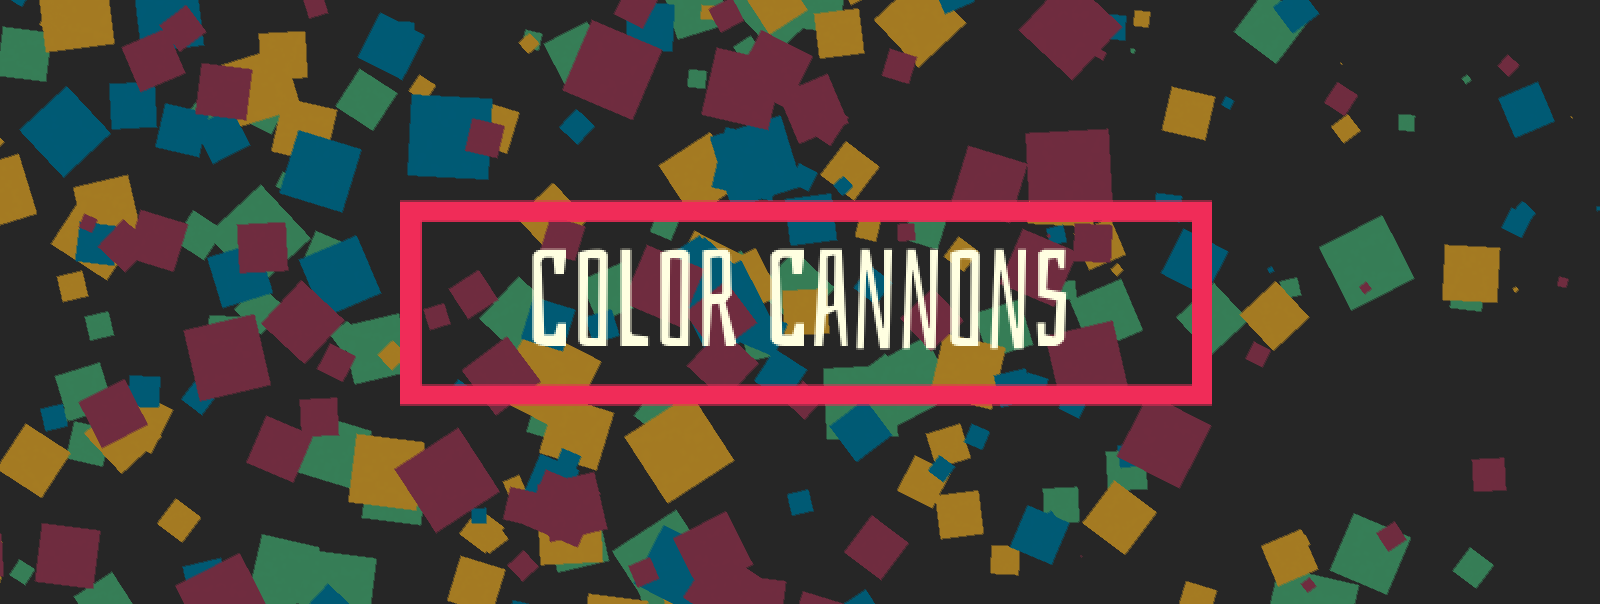 Color Cannons